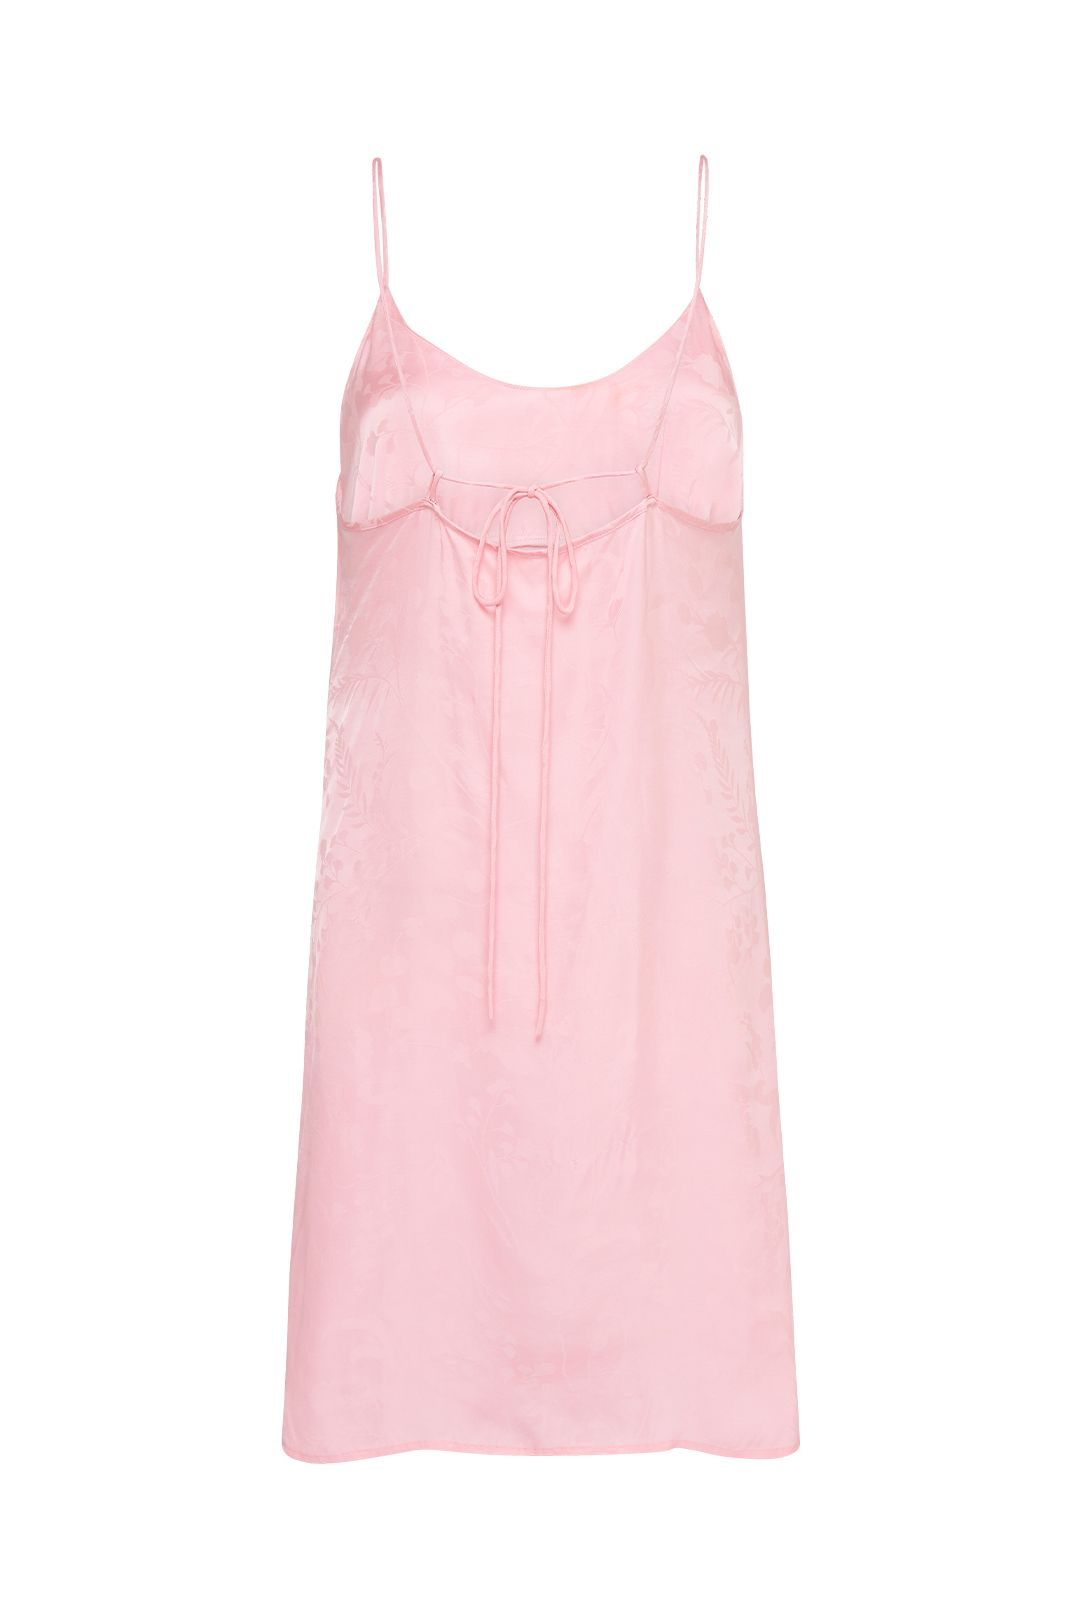 Spell Verona Mini Slip Dress 90s Pink Bias Cut